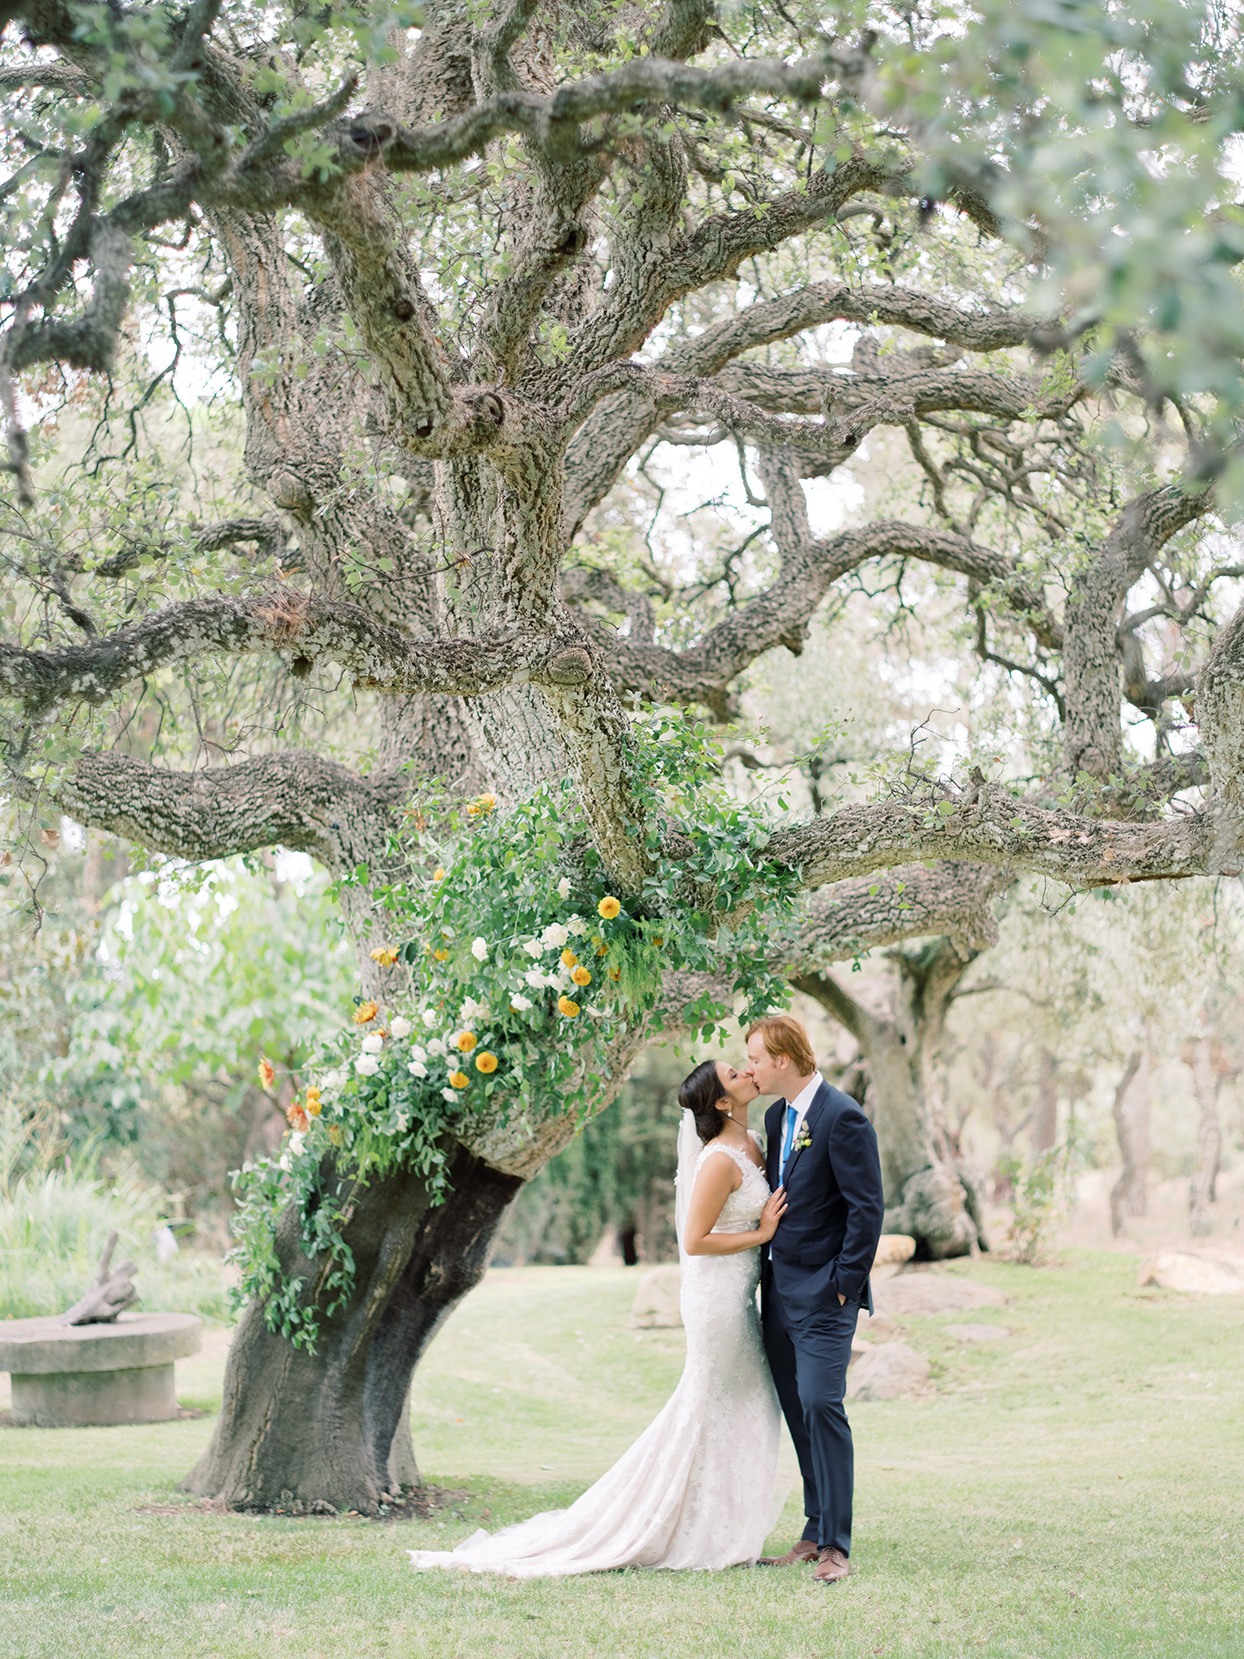 alyssa macia wedding couple kissing under tree